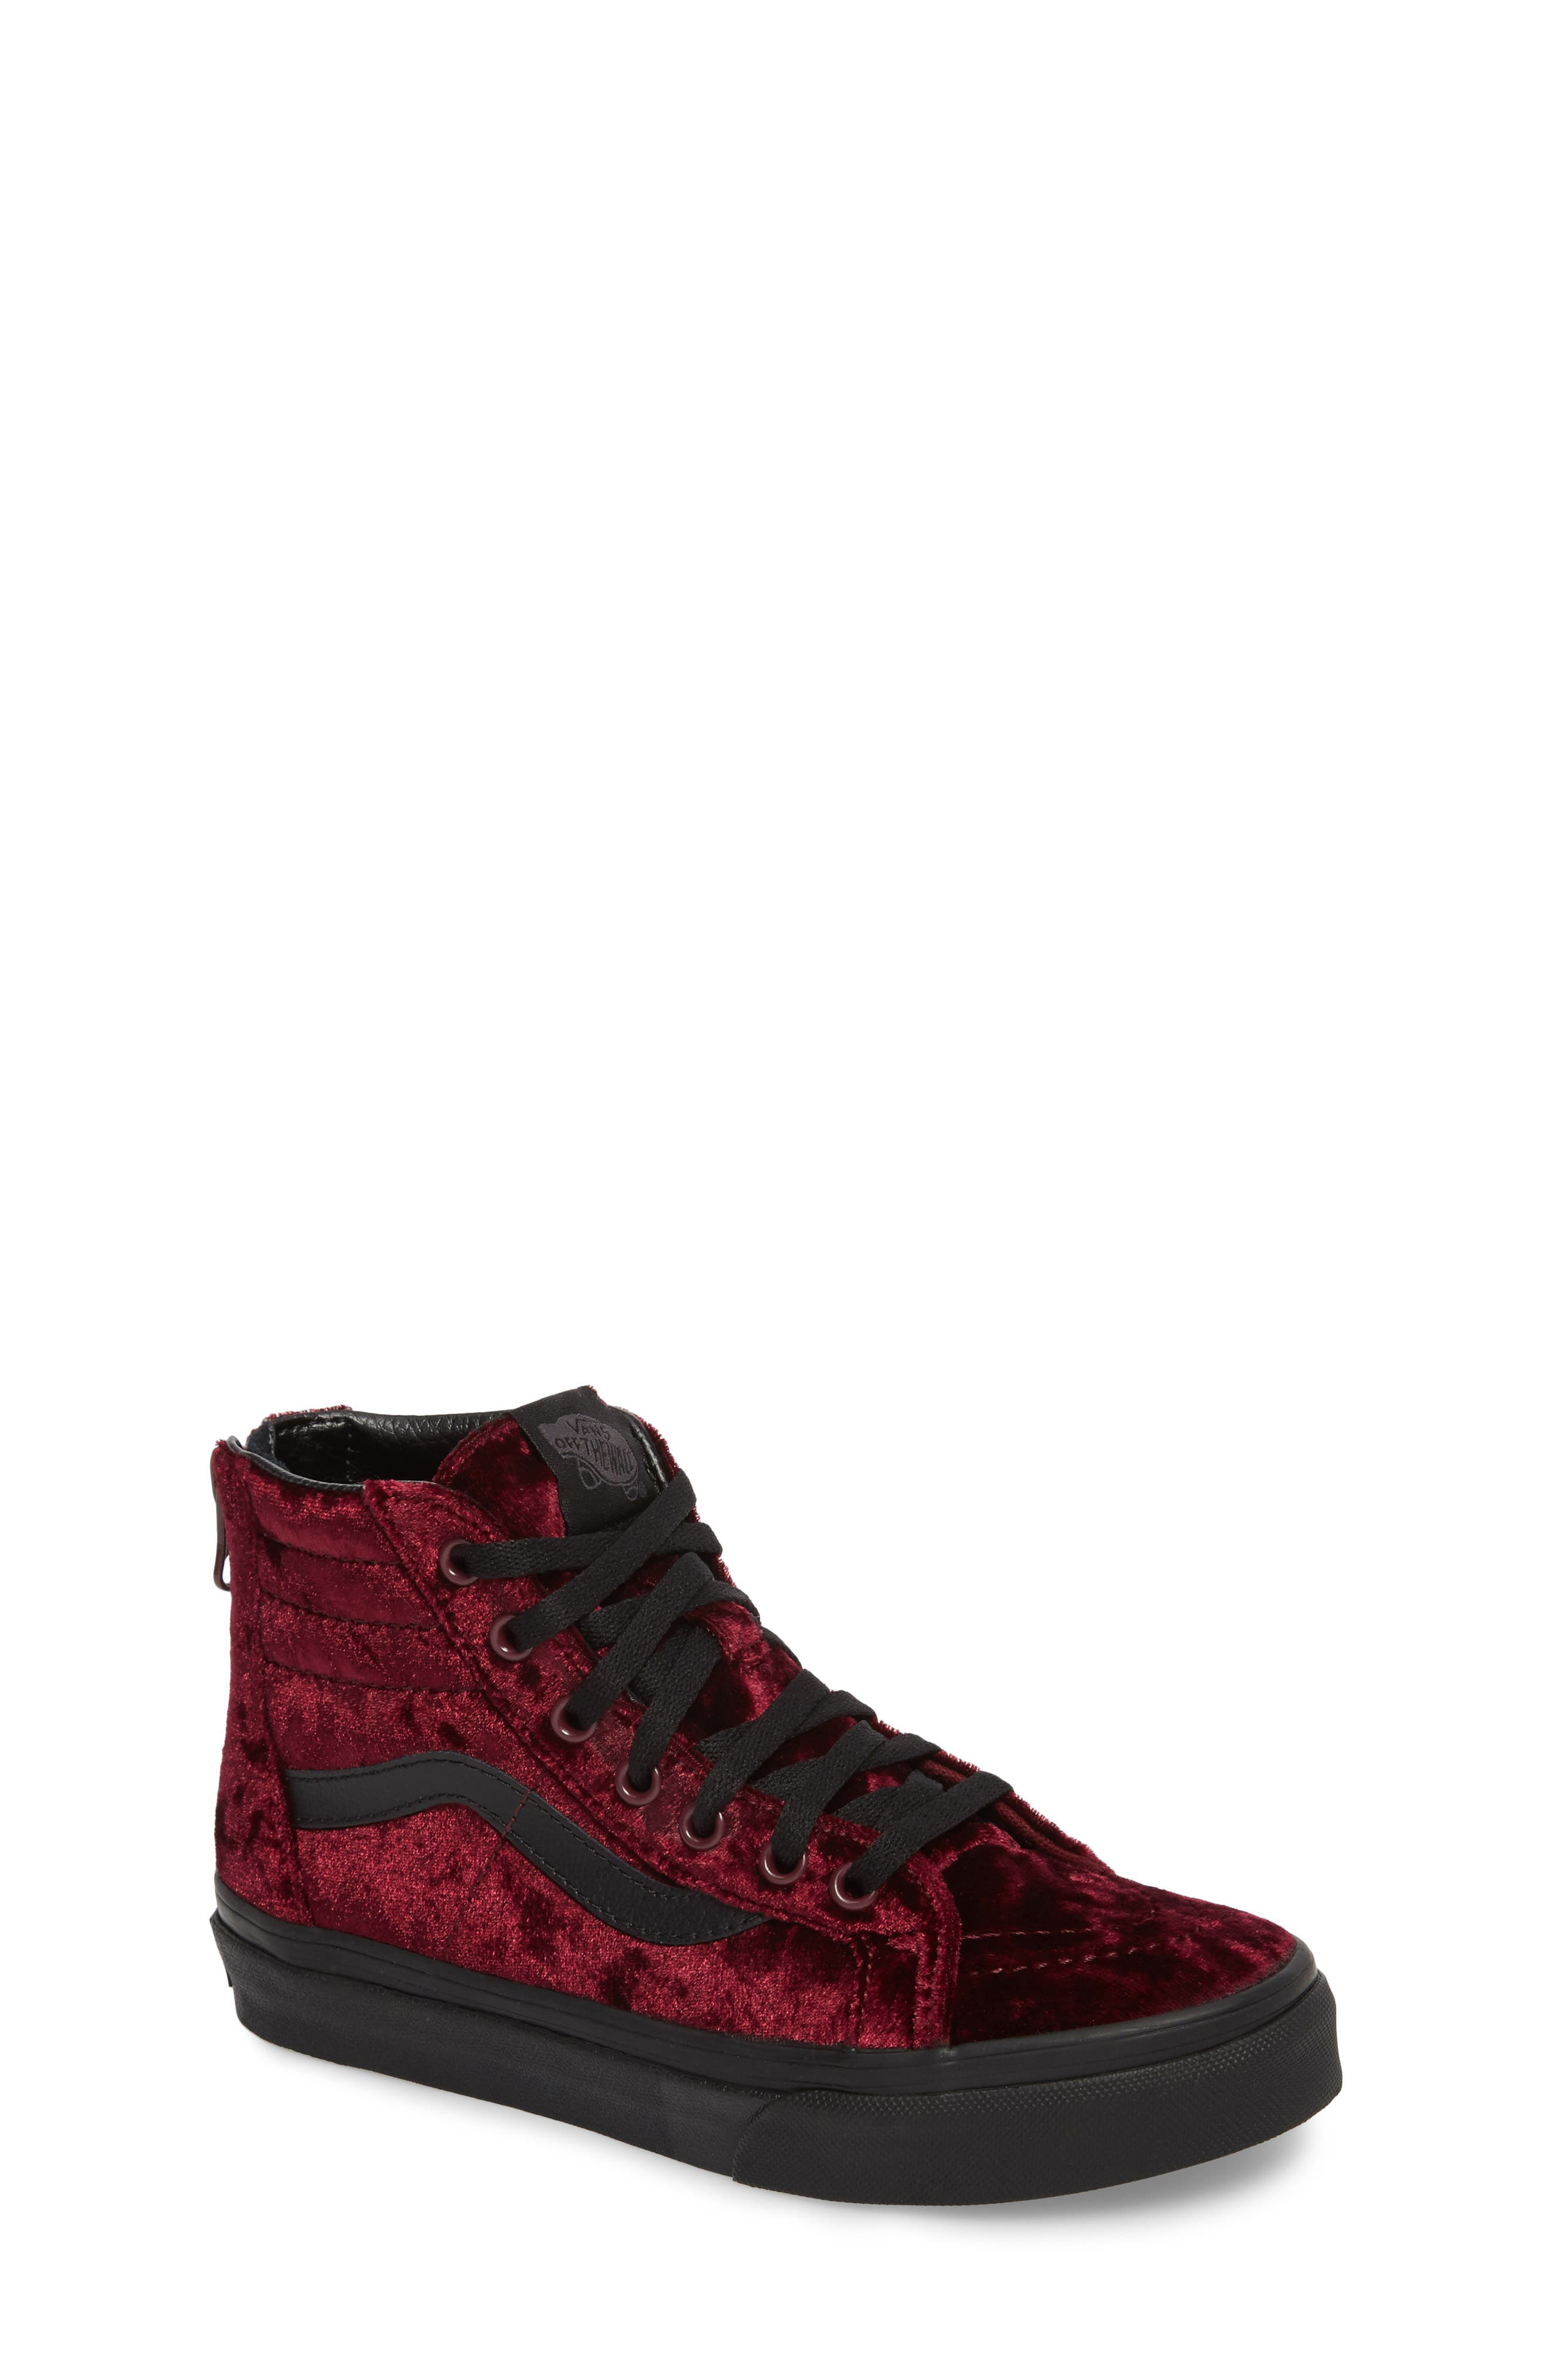 SK8-Hi Zip Sneaker,                         Main,                         color, Red/ Black